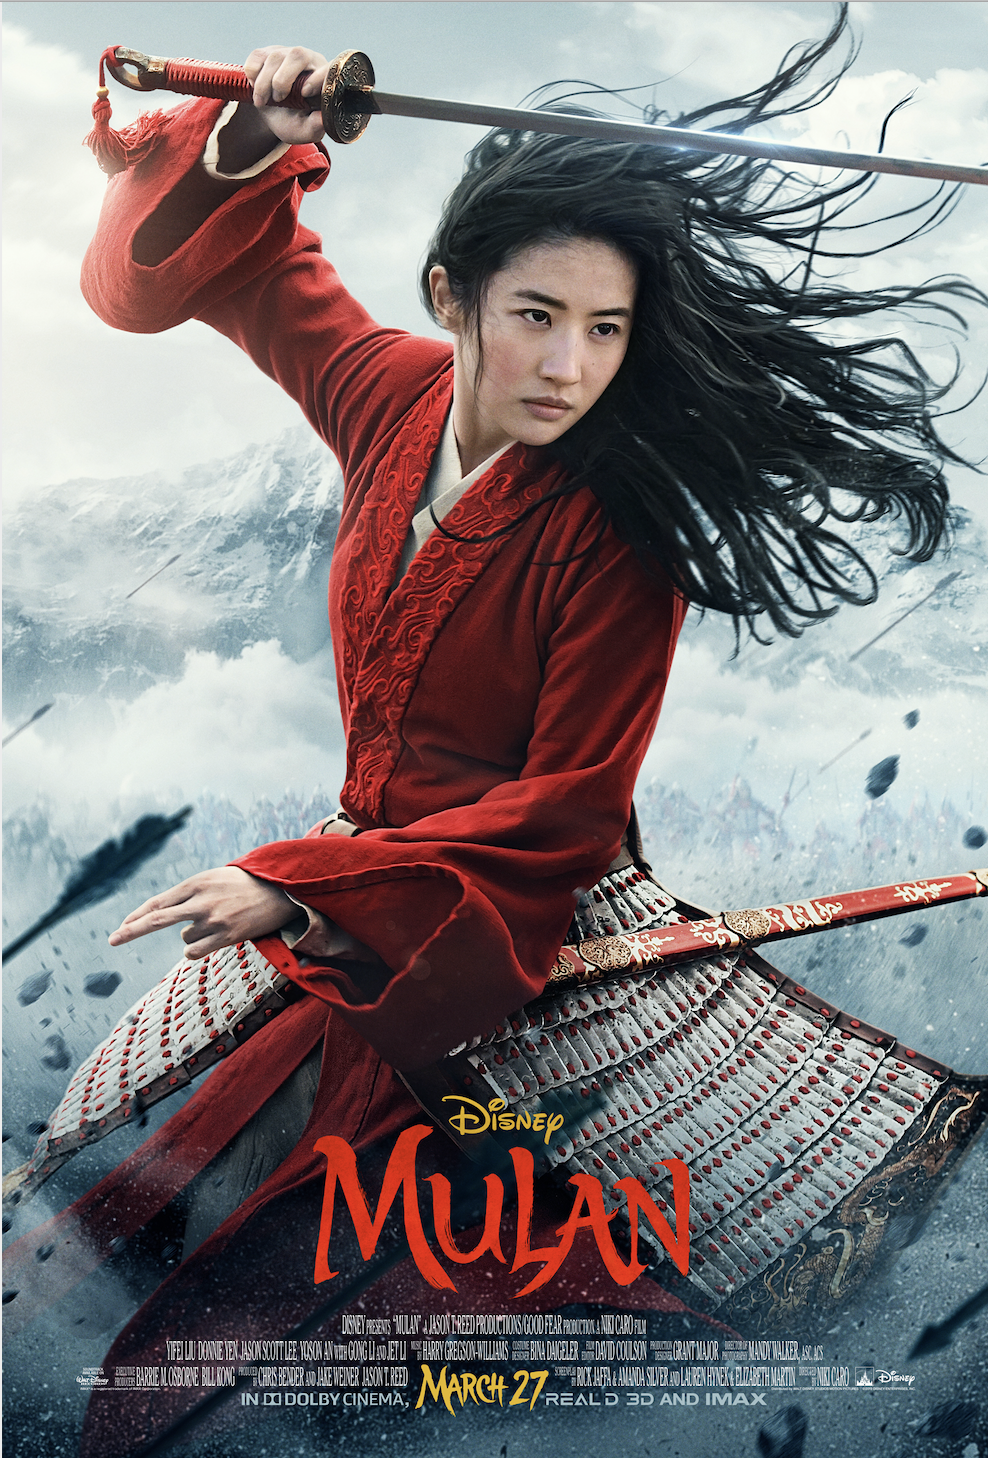 Mulan5 - Disney's Mulan New Trailer & Poster